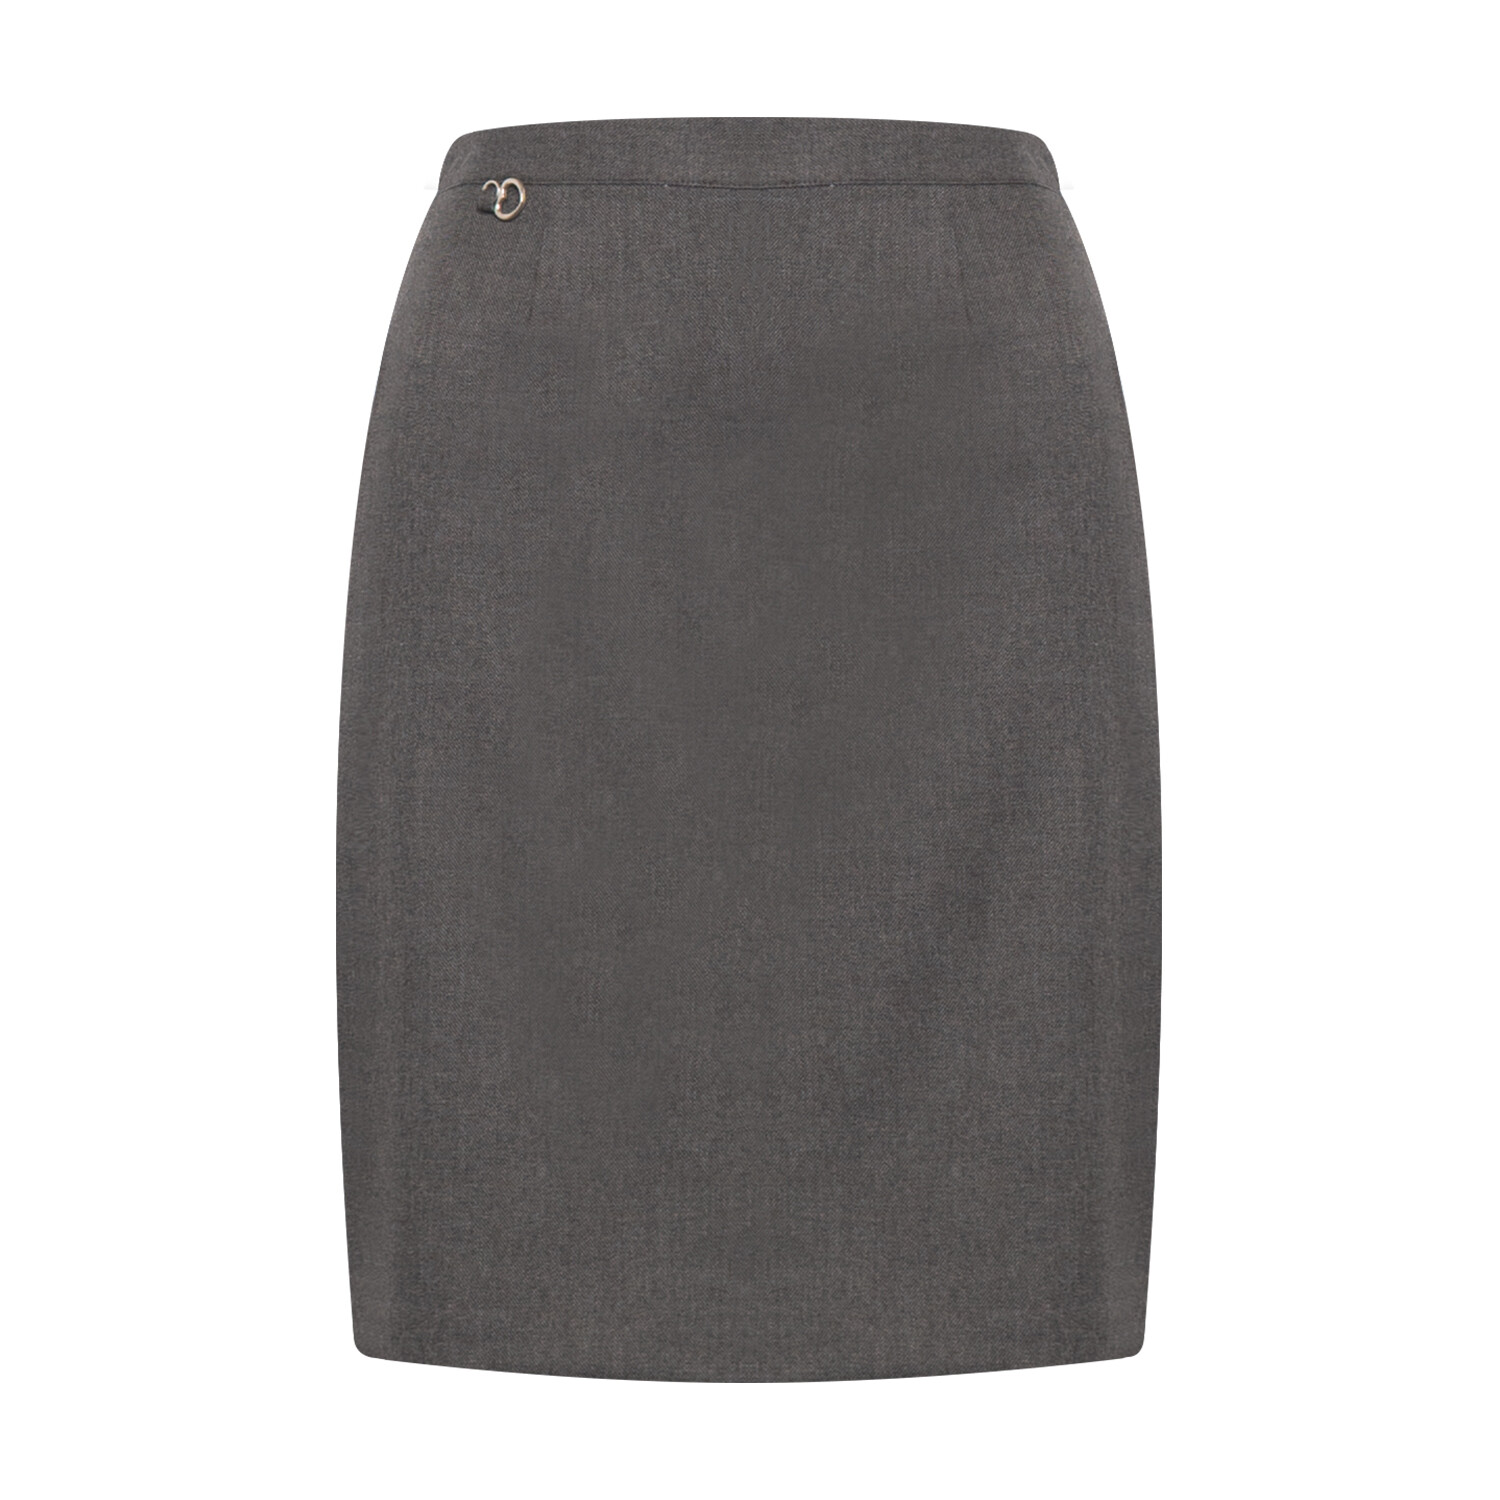 Primary School 'Amber A-Line' Pleated Skirt (From Age 3-4) 'Online Exclusive' (Available in 4 Colours)